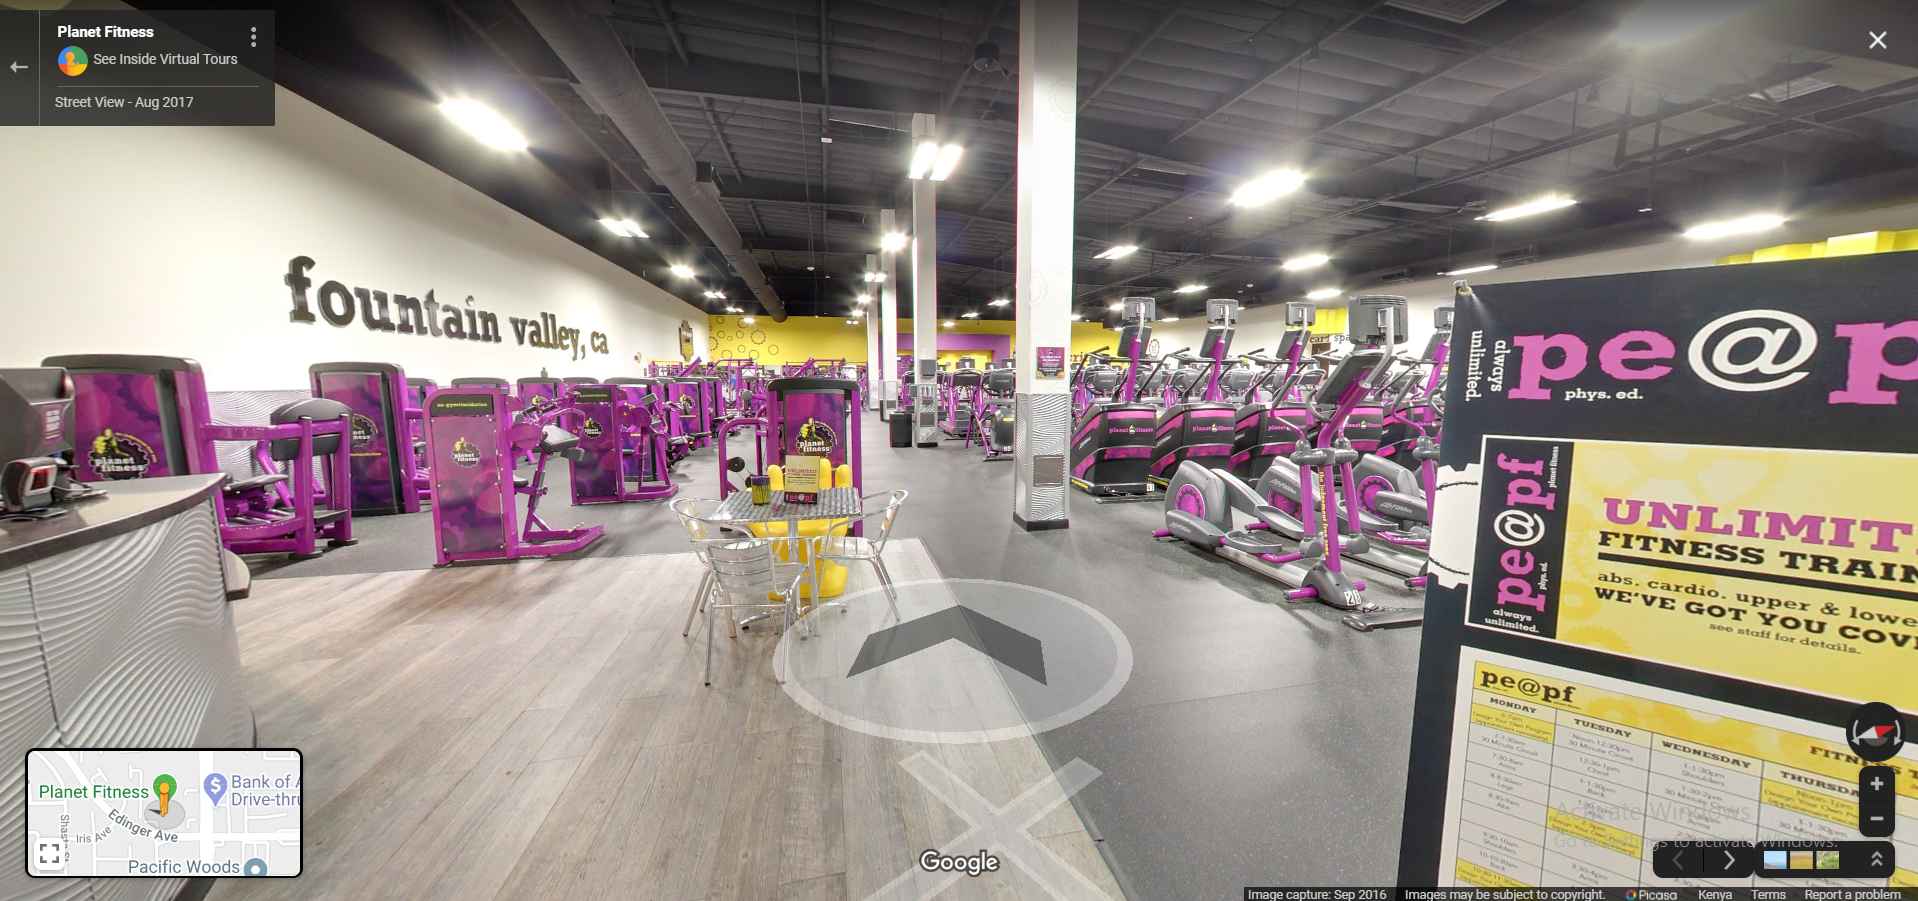 Planet Fitness Fountain Valley